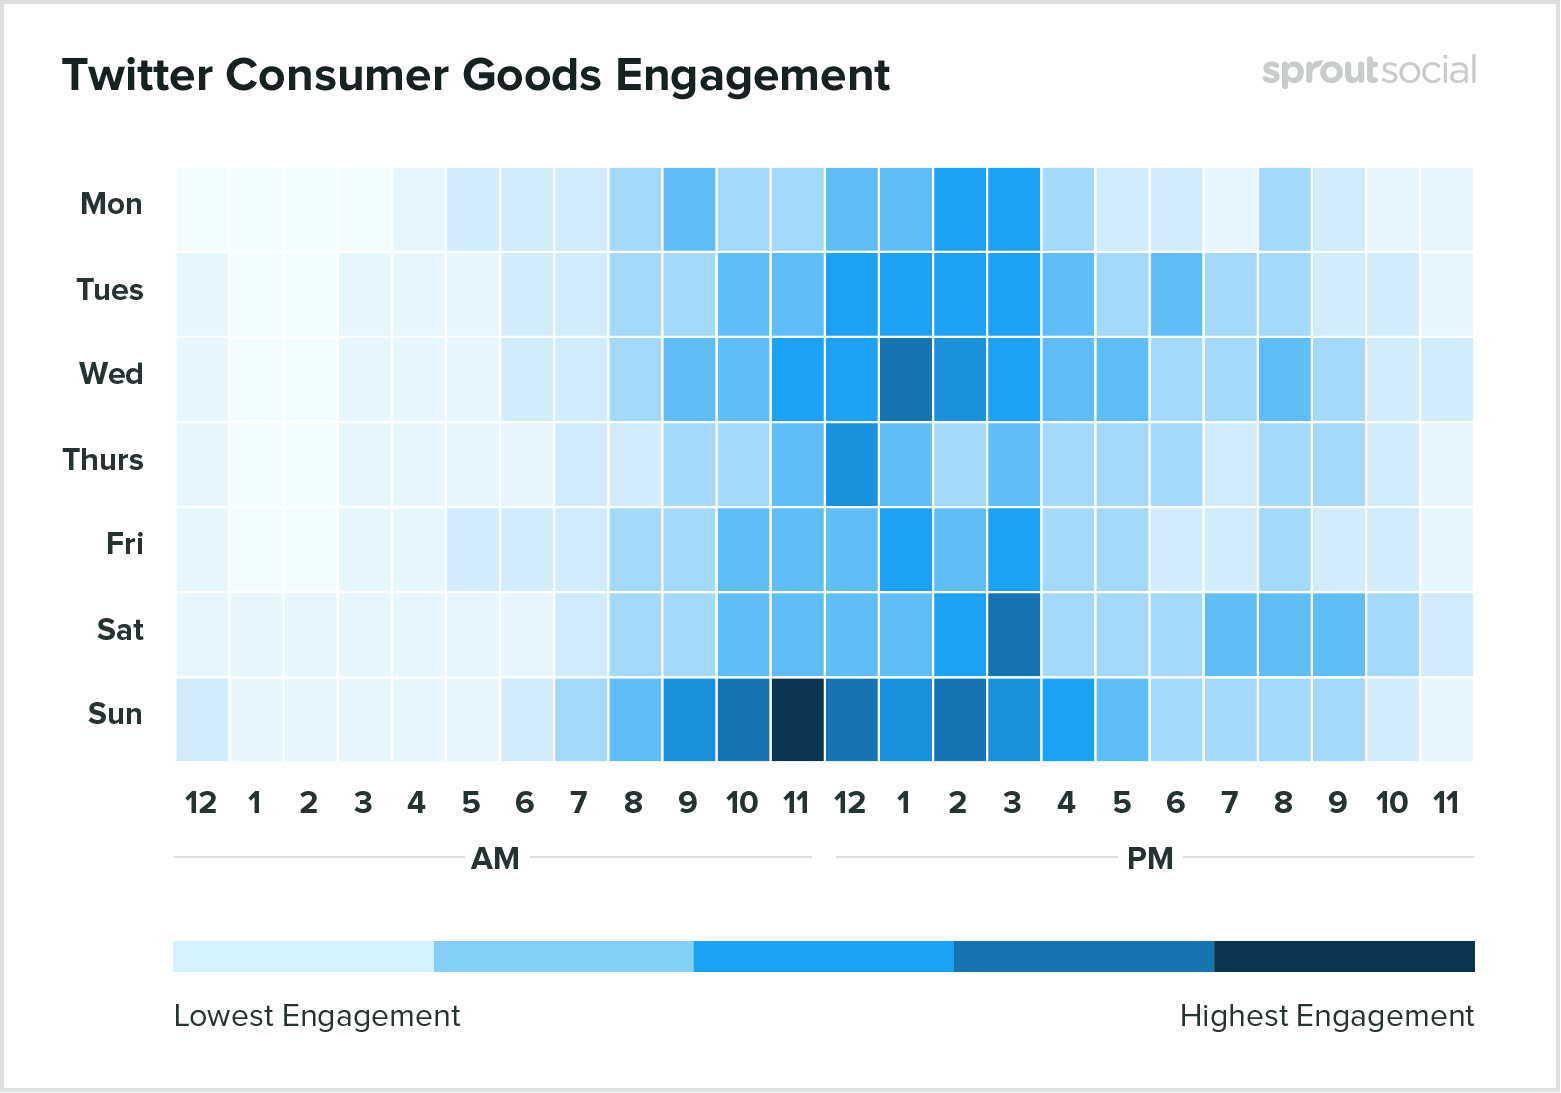 Best times to post on Instagram for consumer goods 2020